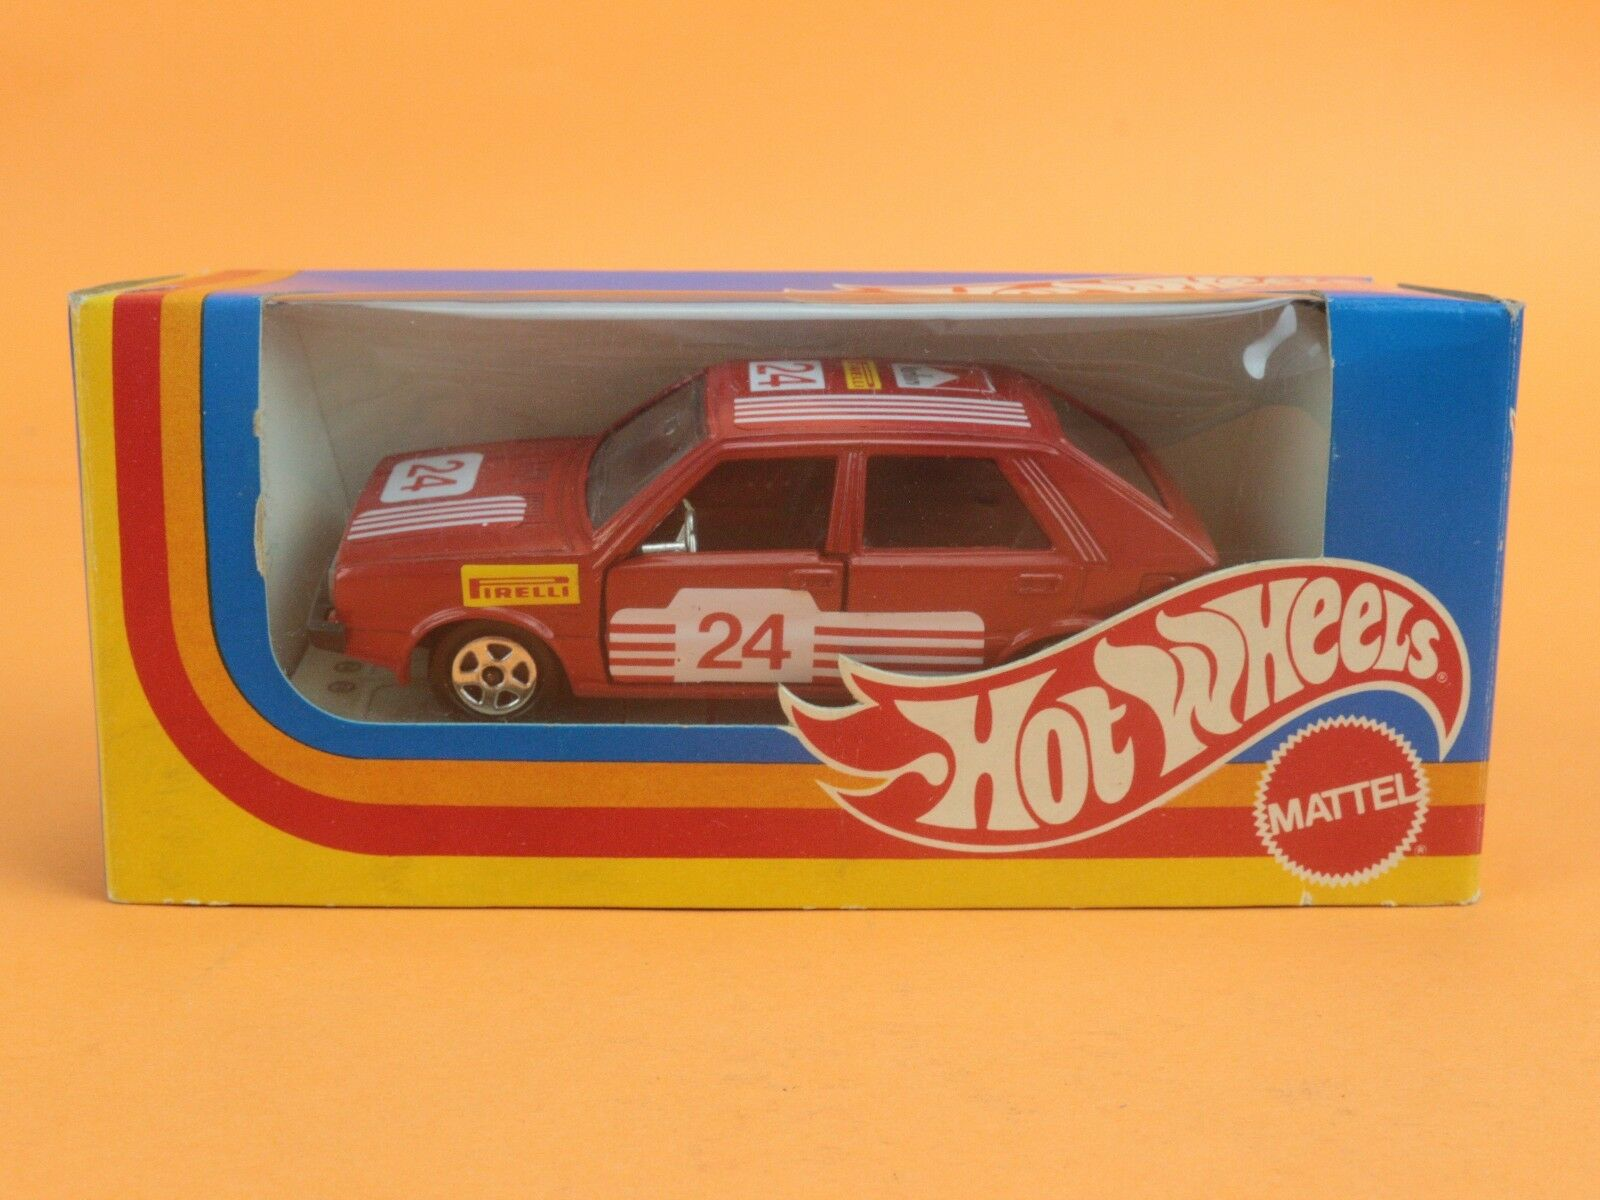 Mattel 1 43 Hot Wheels a159 to 159 Lancia Delta Rally in Box [og3-024]